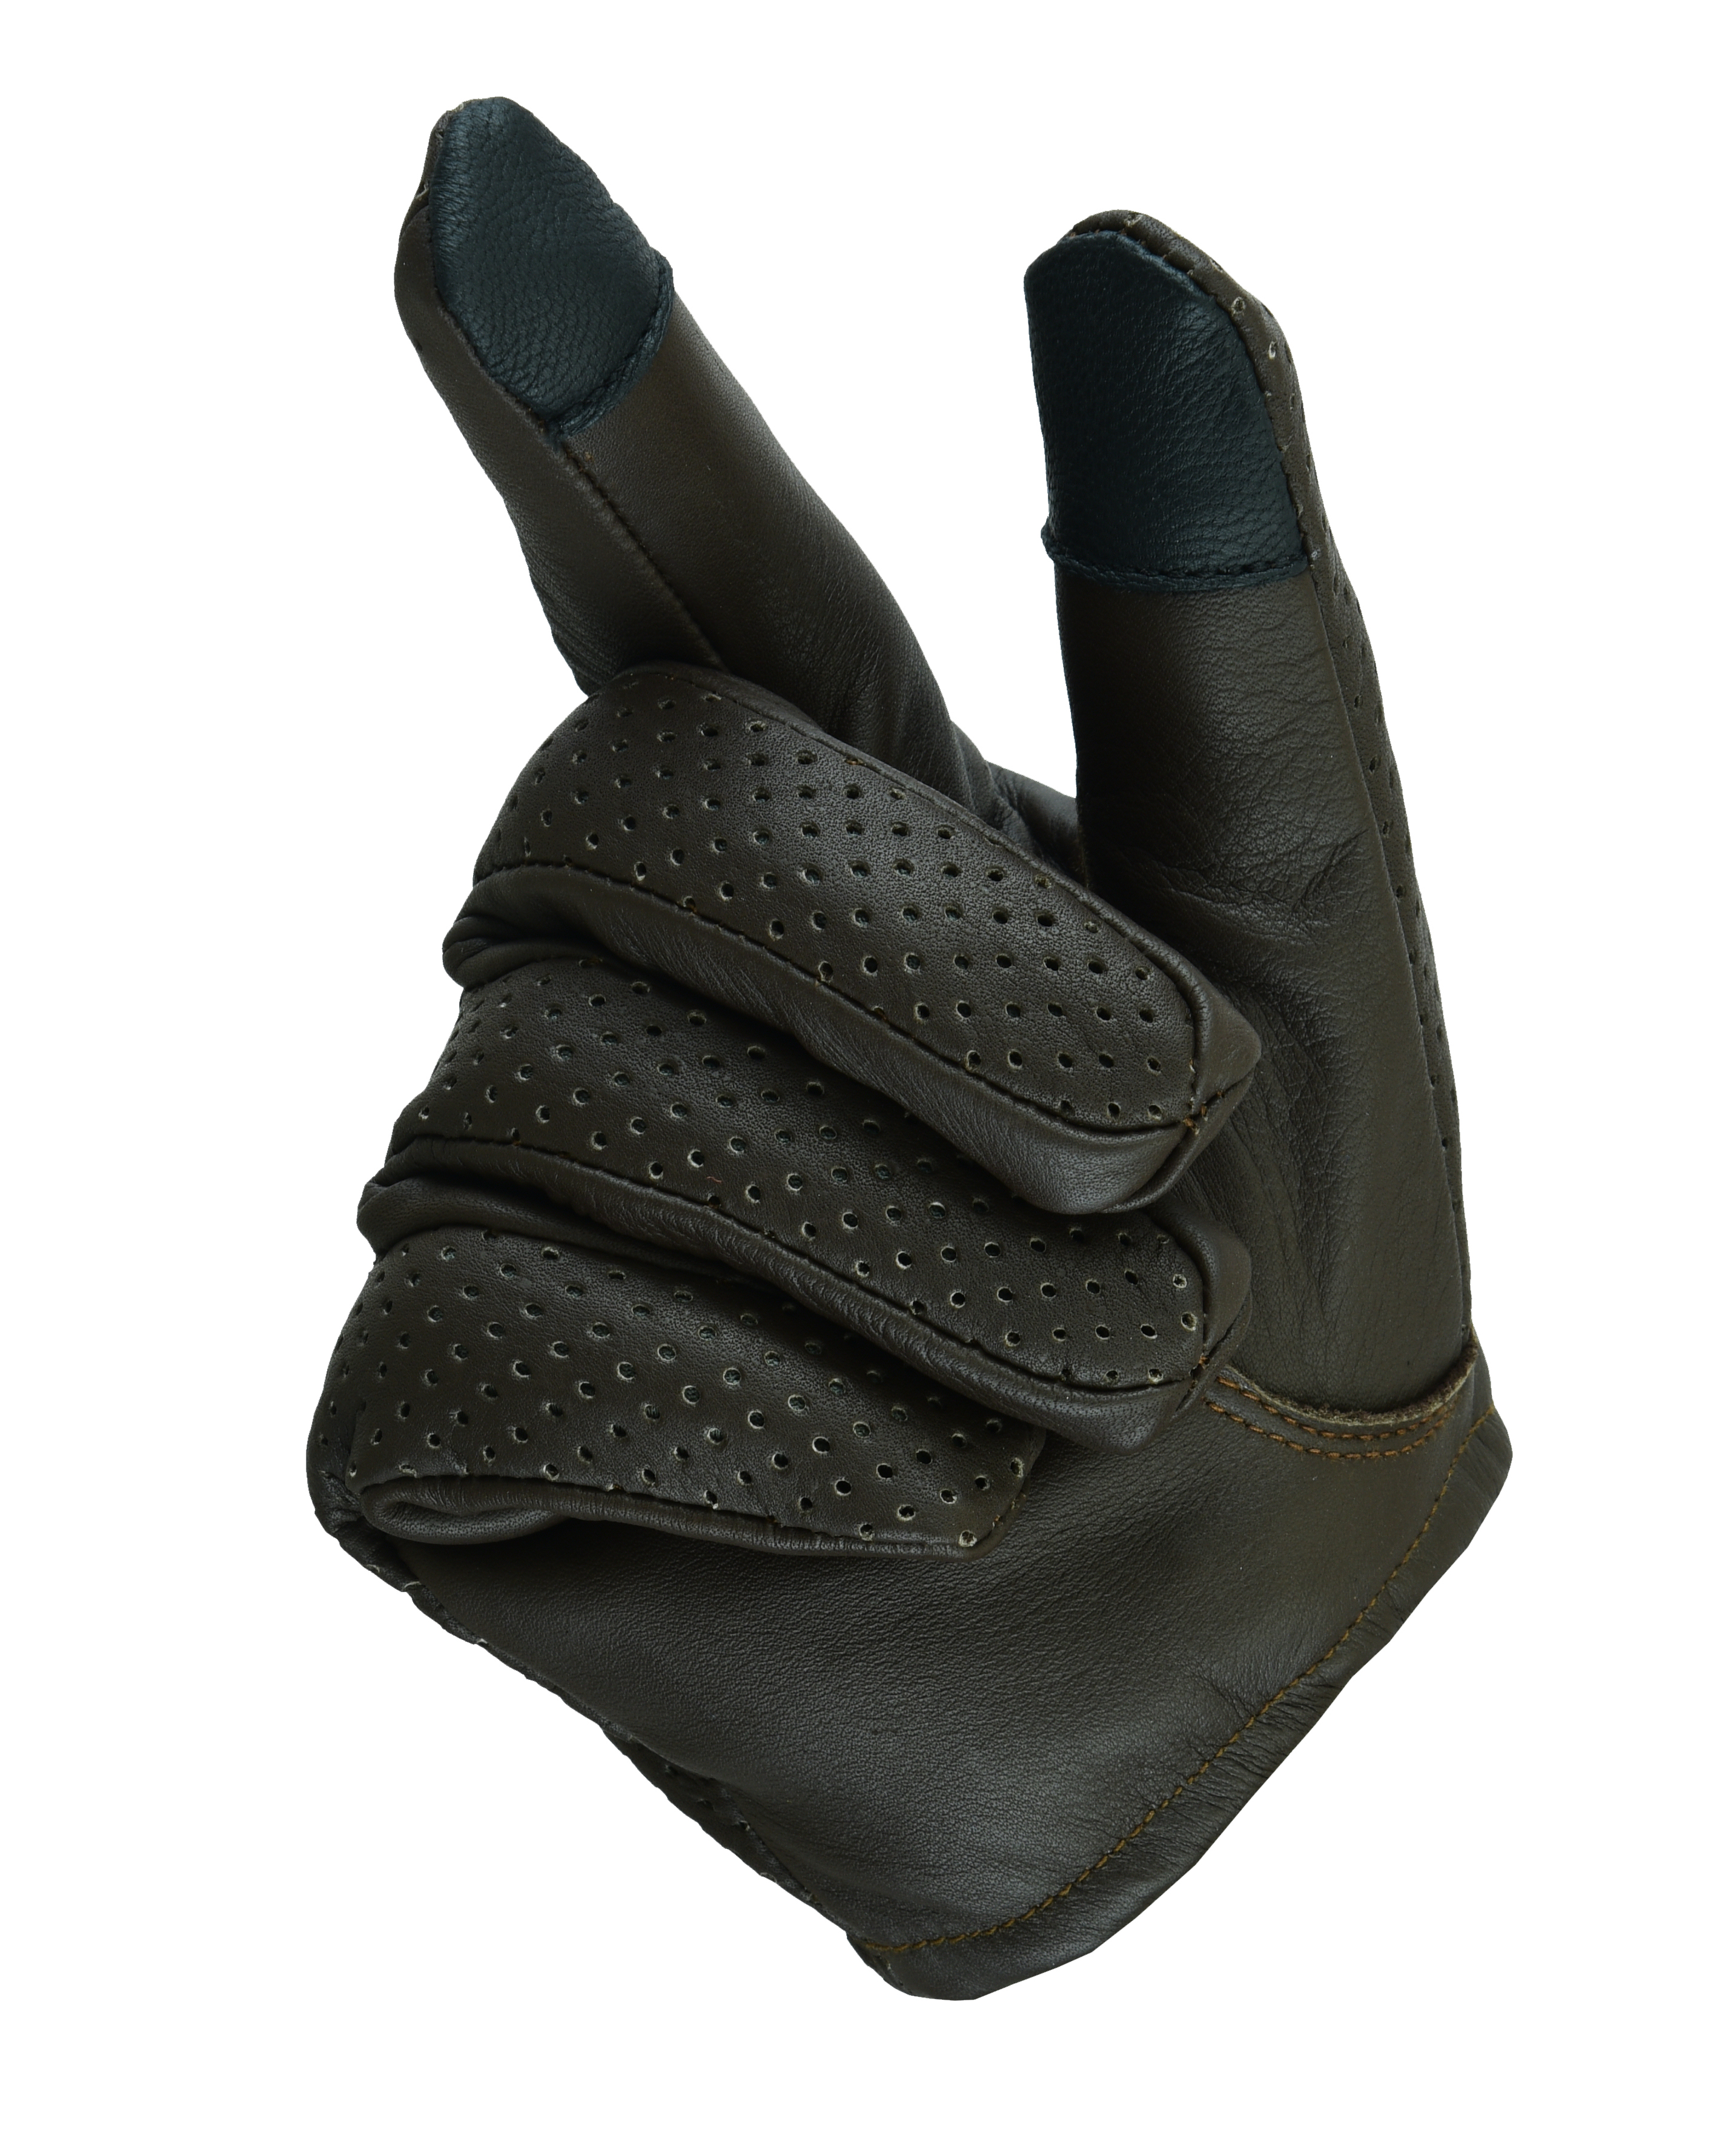 ff2ace47c476b Men's Air Pro Sport Motorcycle, Driving, Police Patrol Summer Glove Water  Resistant Leather